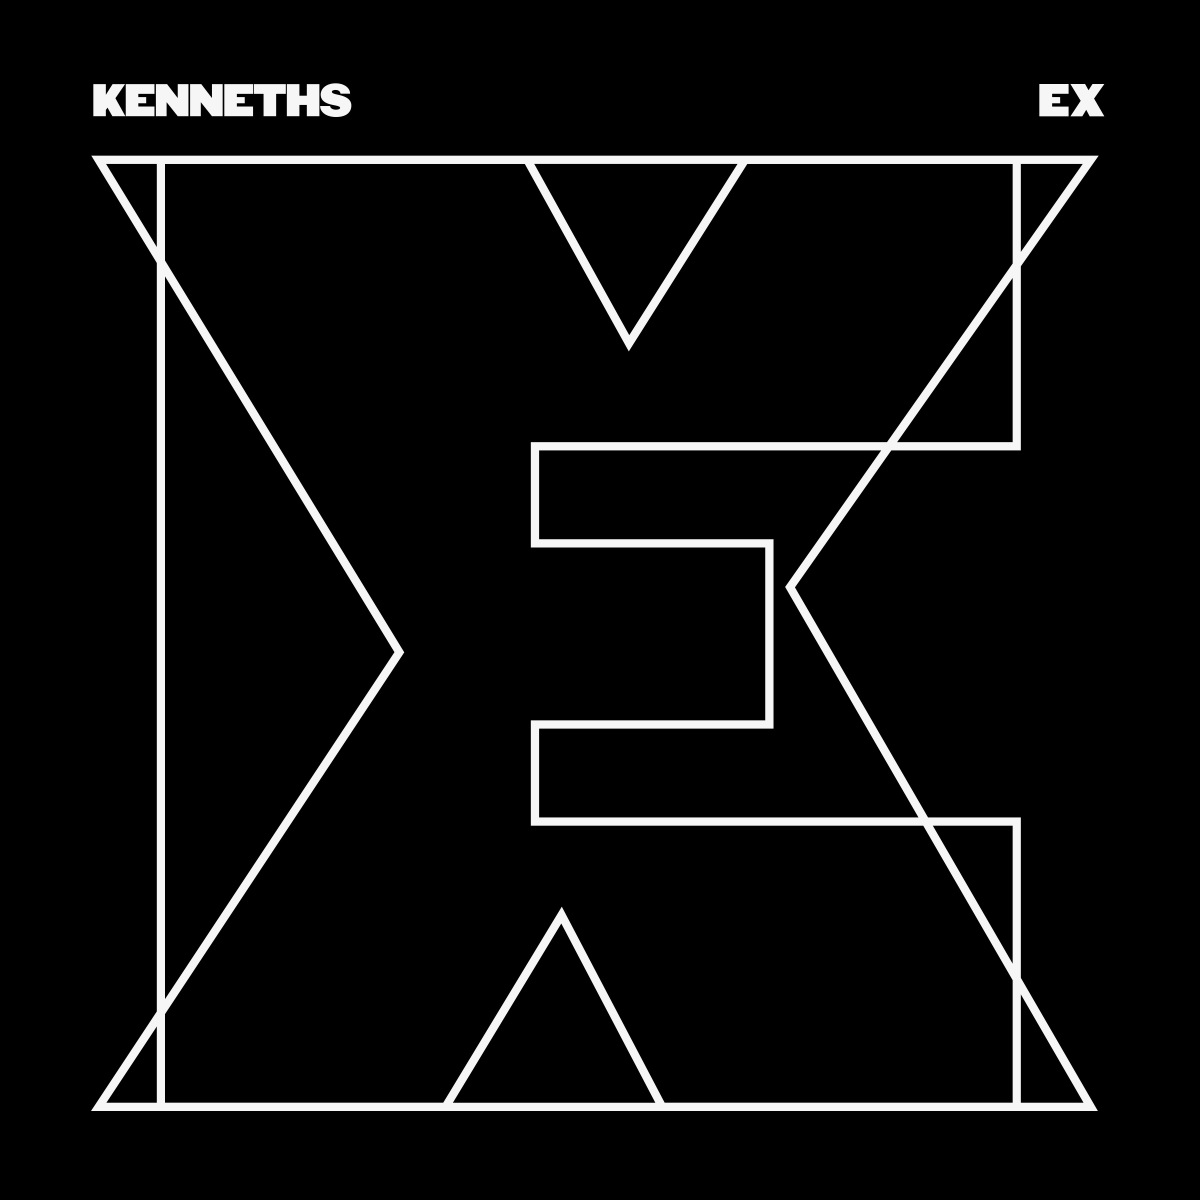 EP REVIEW: 'Ex' by The Kenneths   The Soundboard